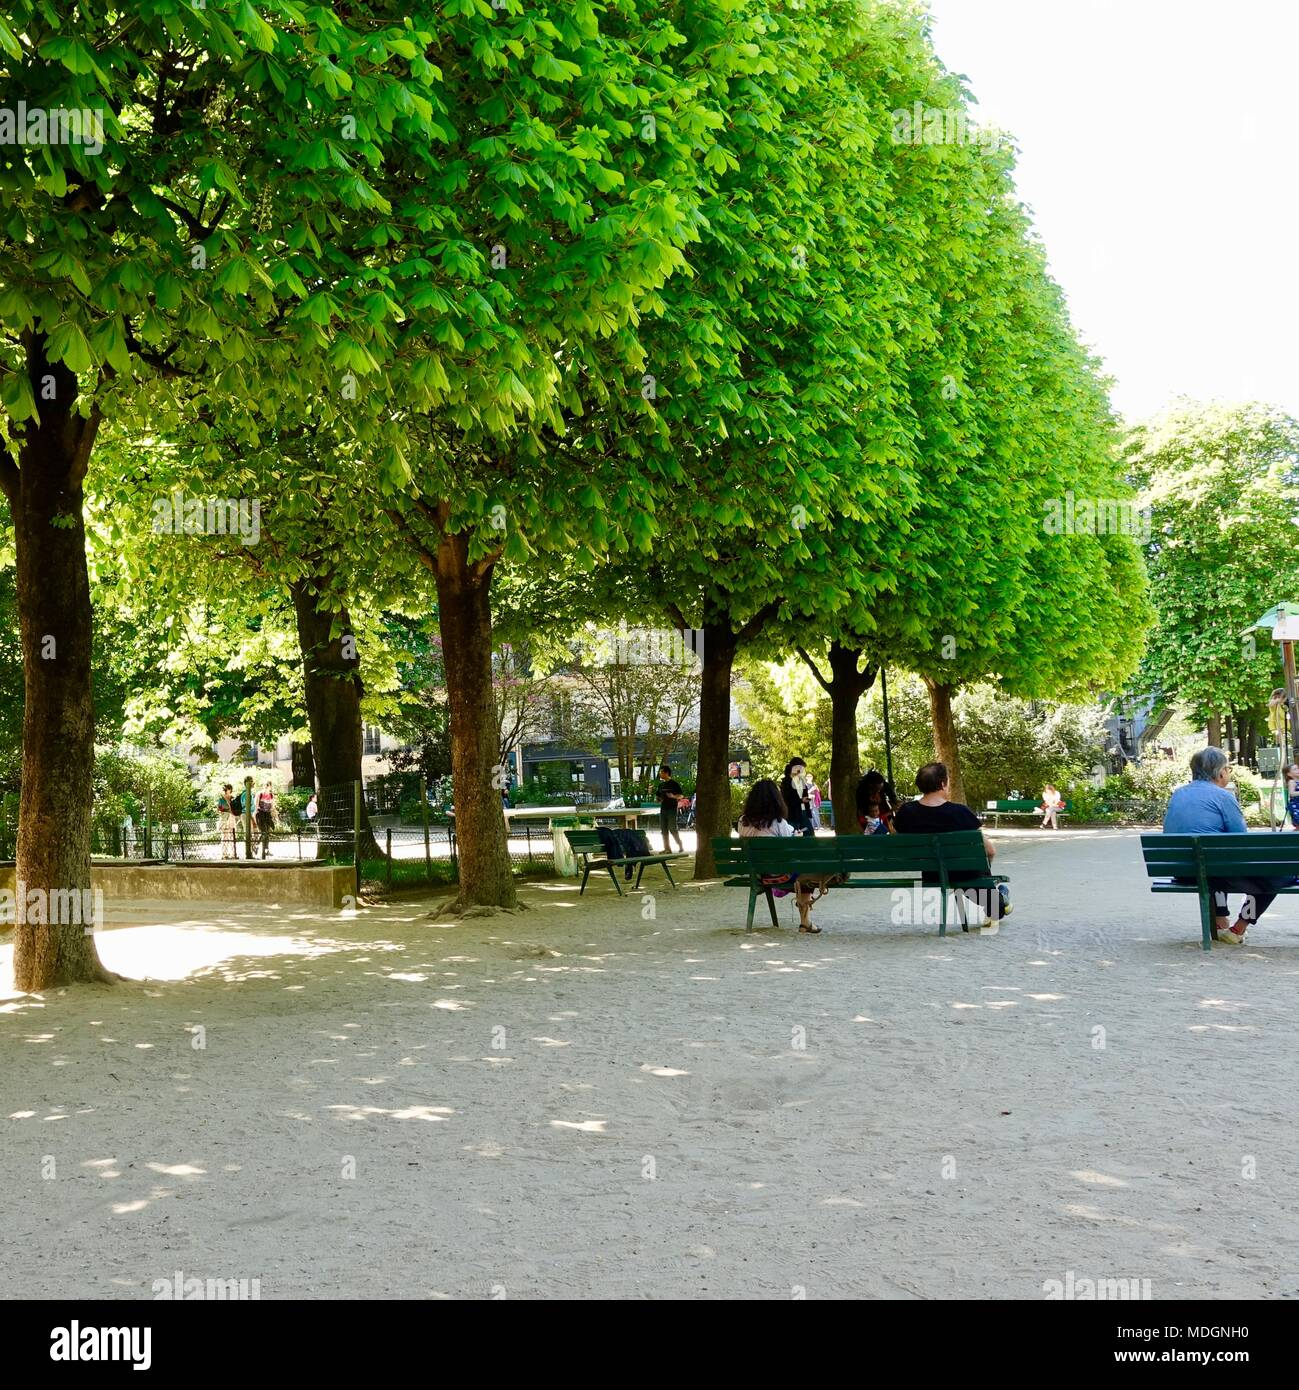 Families, people, relax in Square Maurice Gardette on a warm spring day. Paris, France. - Stock Image